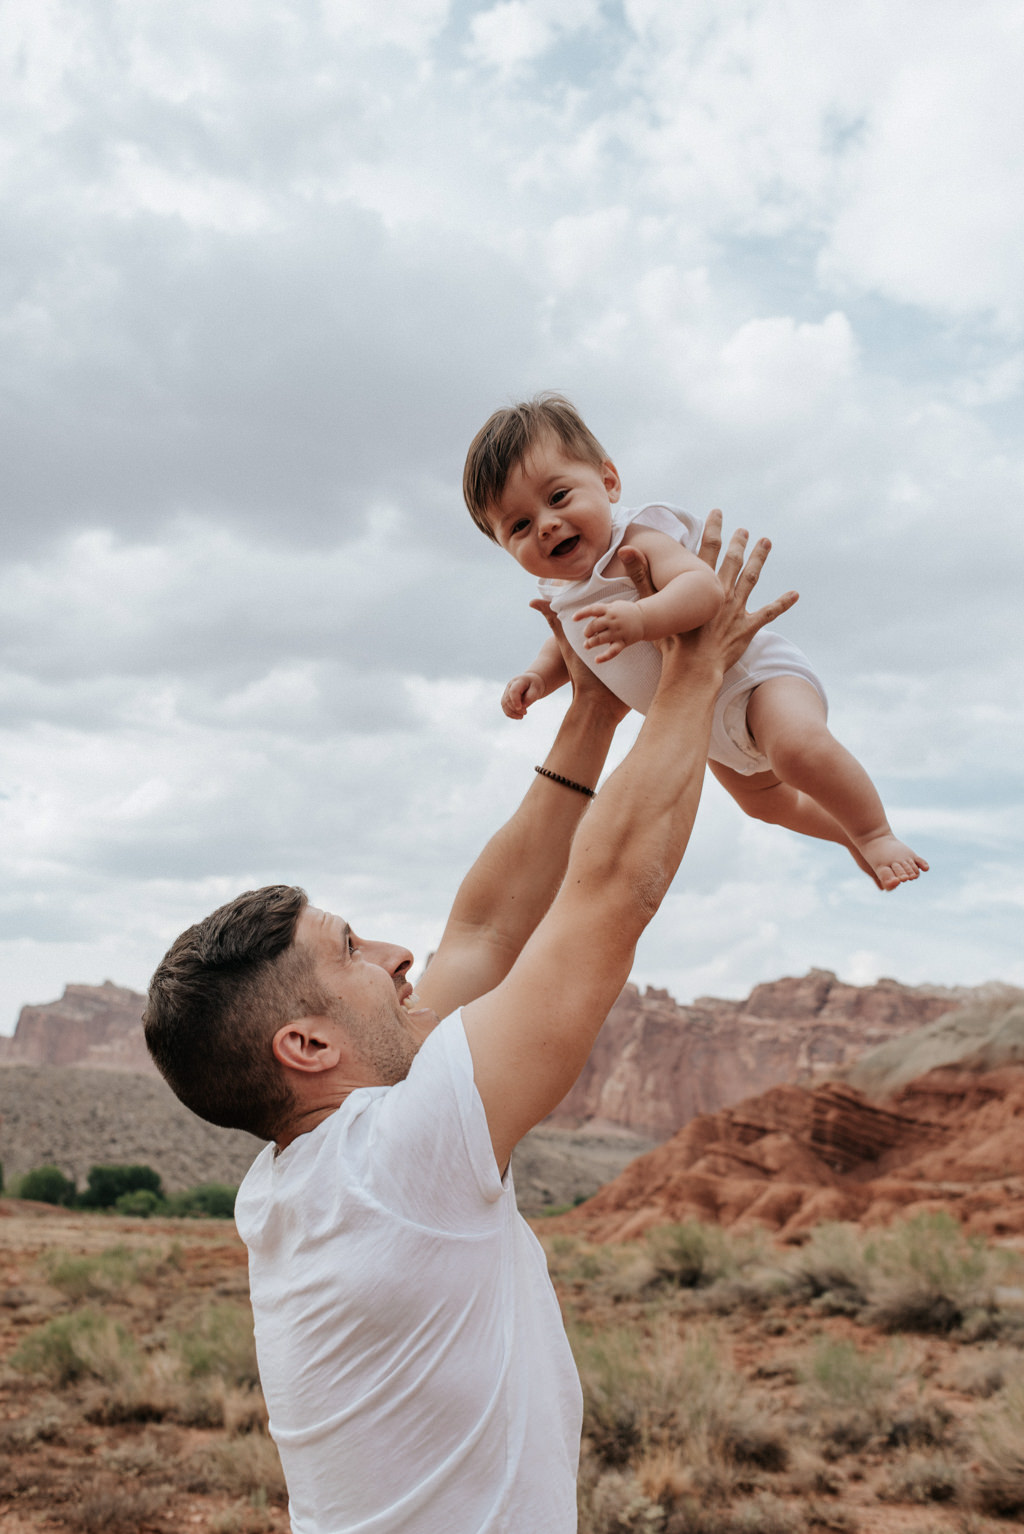 Father throwing baby son in air in Capitol Reef National Park